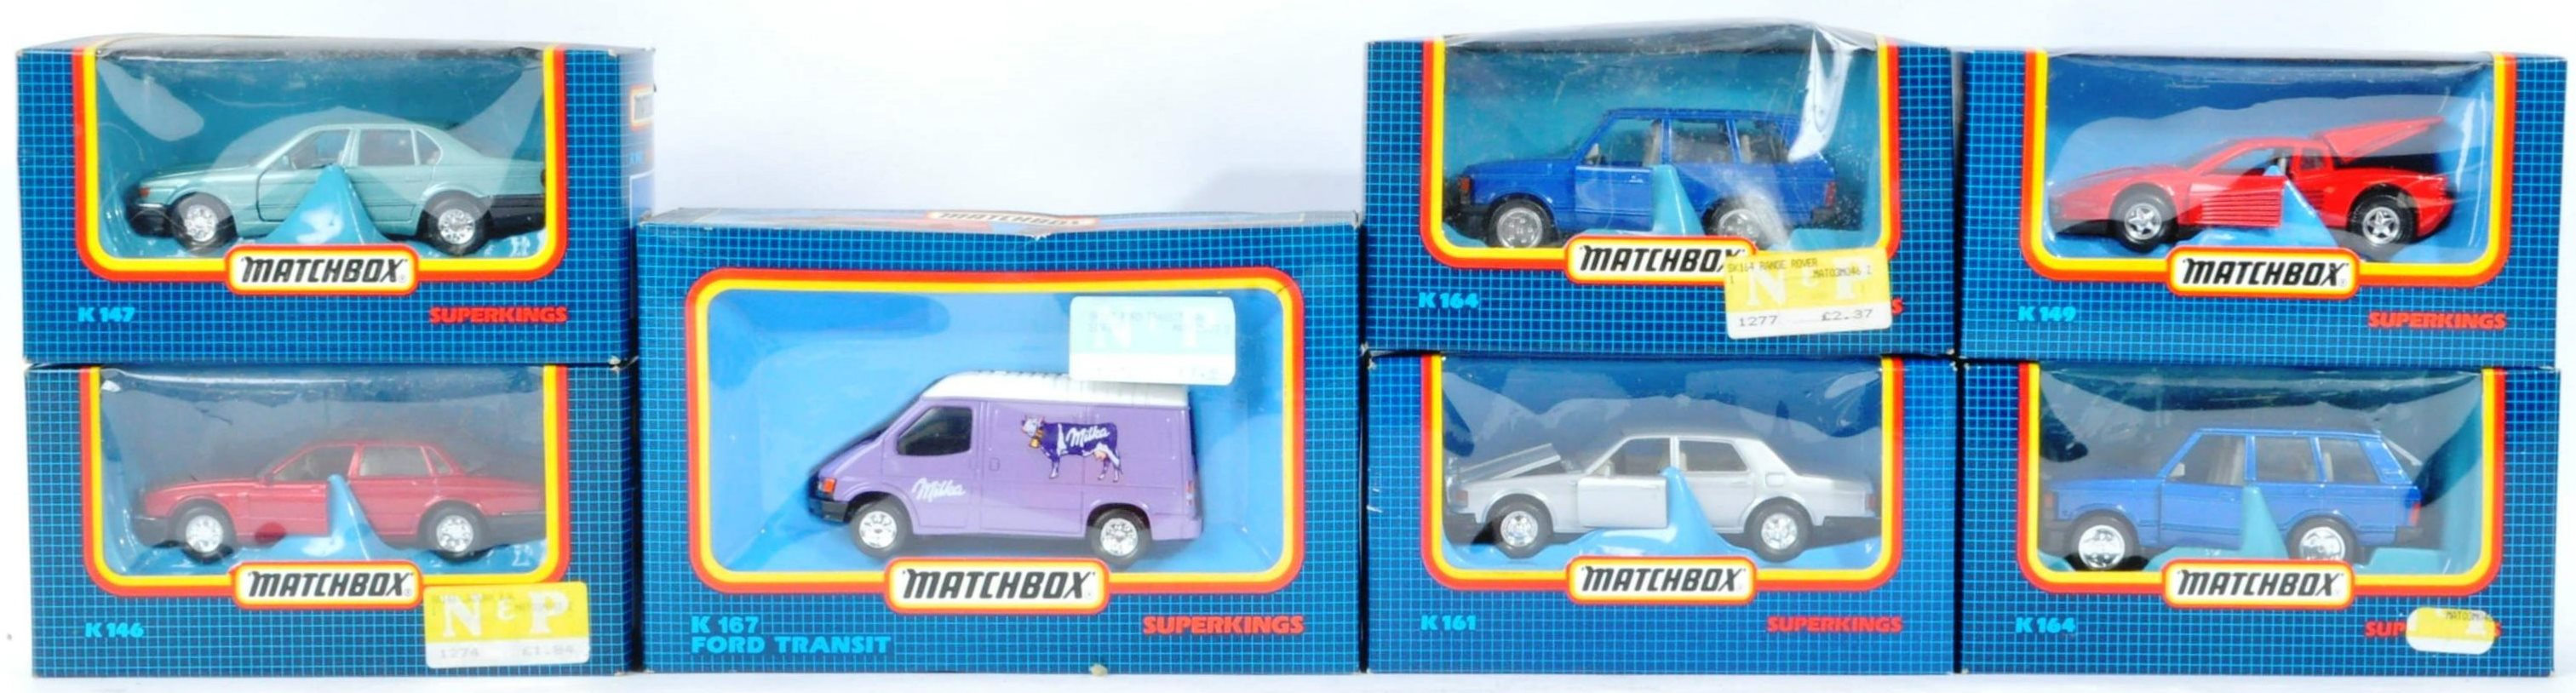 COLLECTION OF VINTAGE MATCHBOX SUPERKINGS DIECAST MODELS